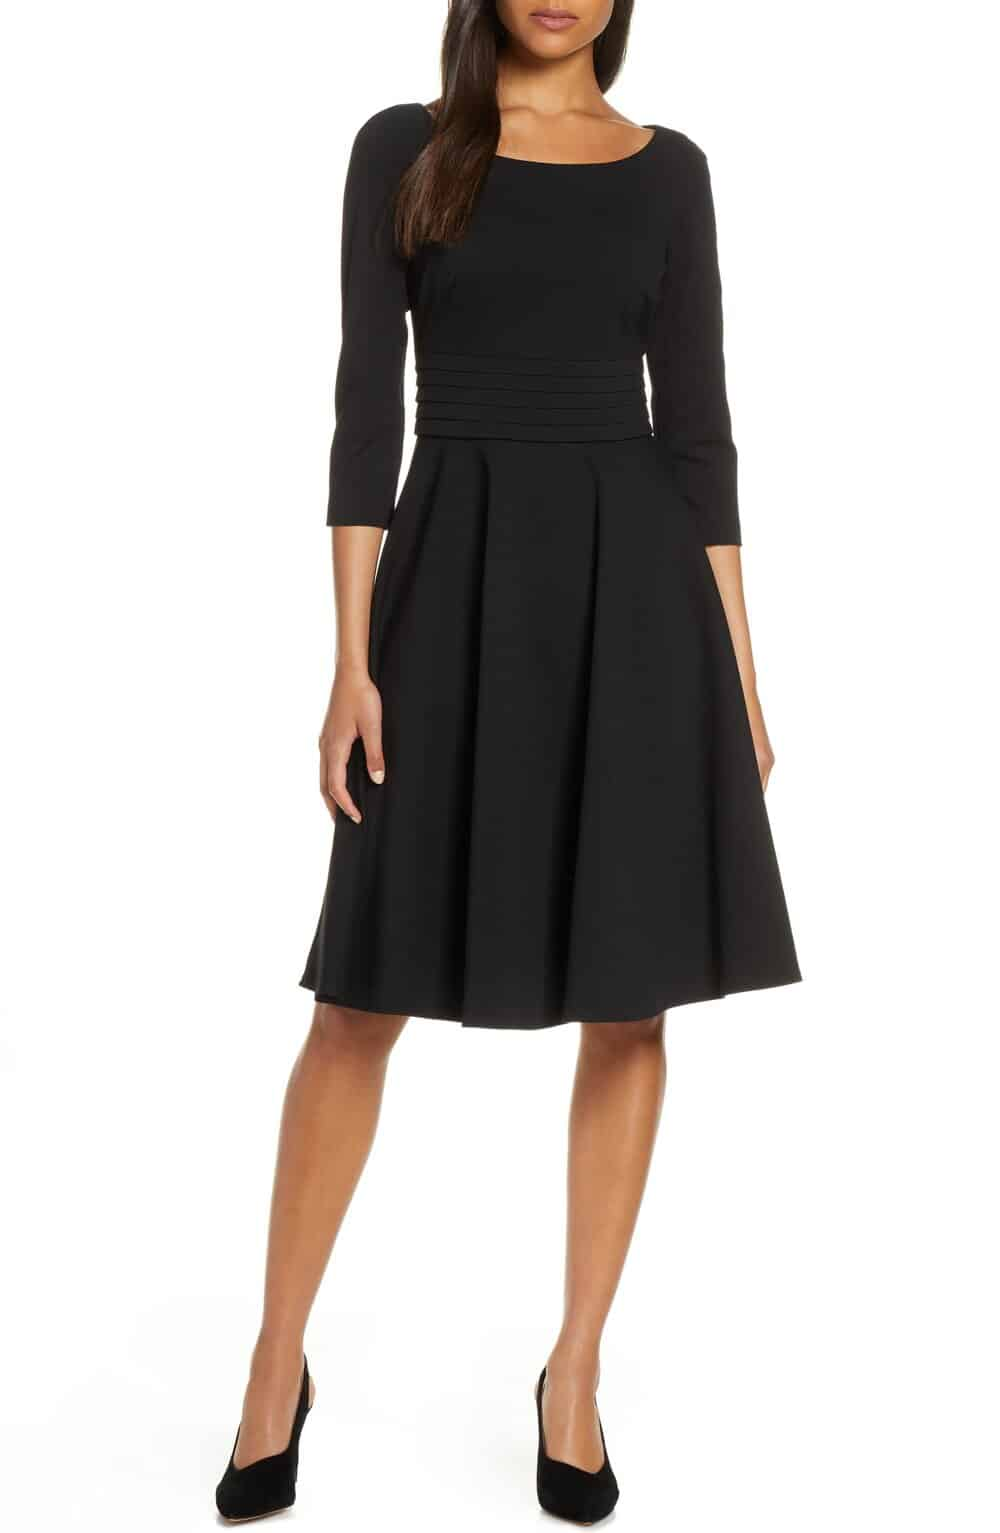 fit and flare black dress perfect for Paris everyday parisian